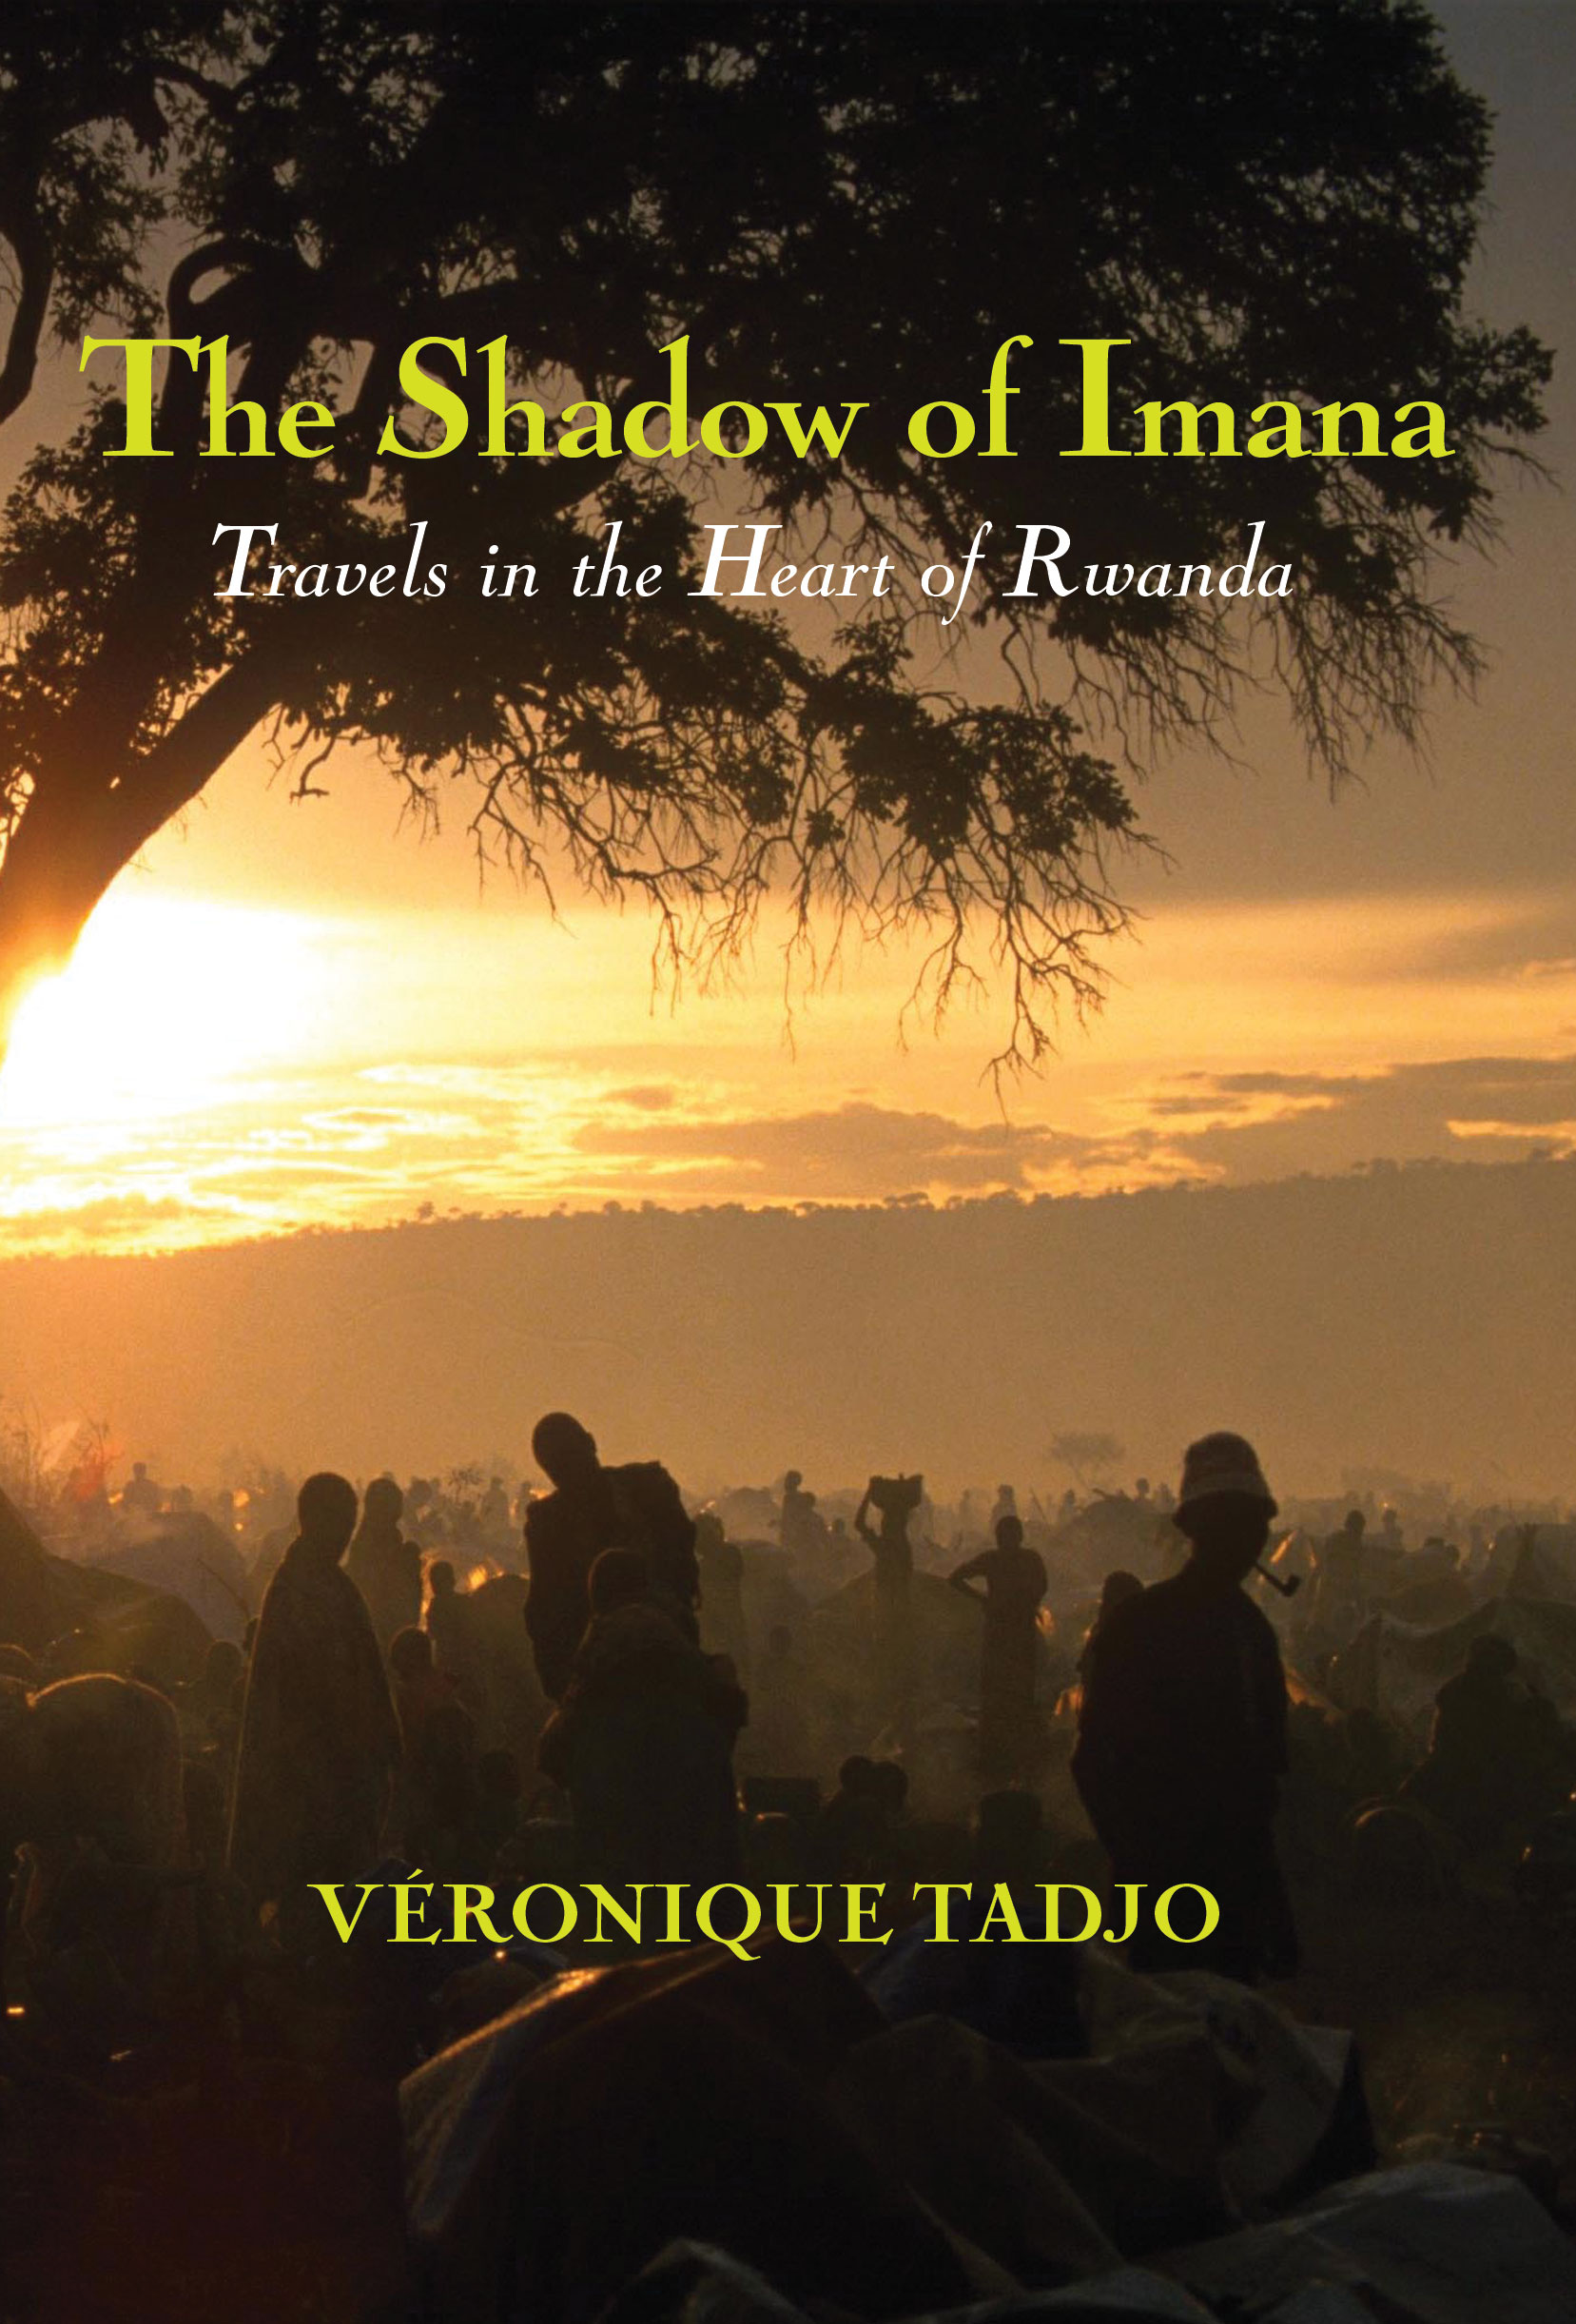 The Shadow of Imana: Travels in the Heart of Rwanda by Véronique  Tadjo (translated by Véronique  Wakerley)